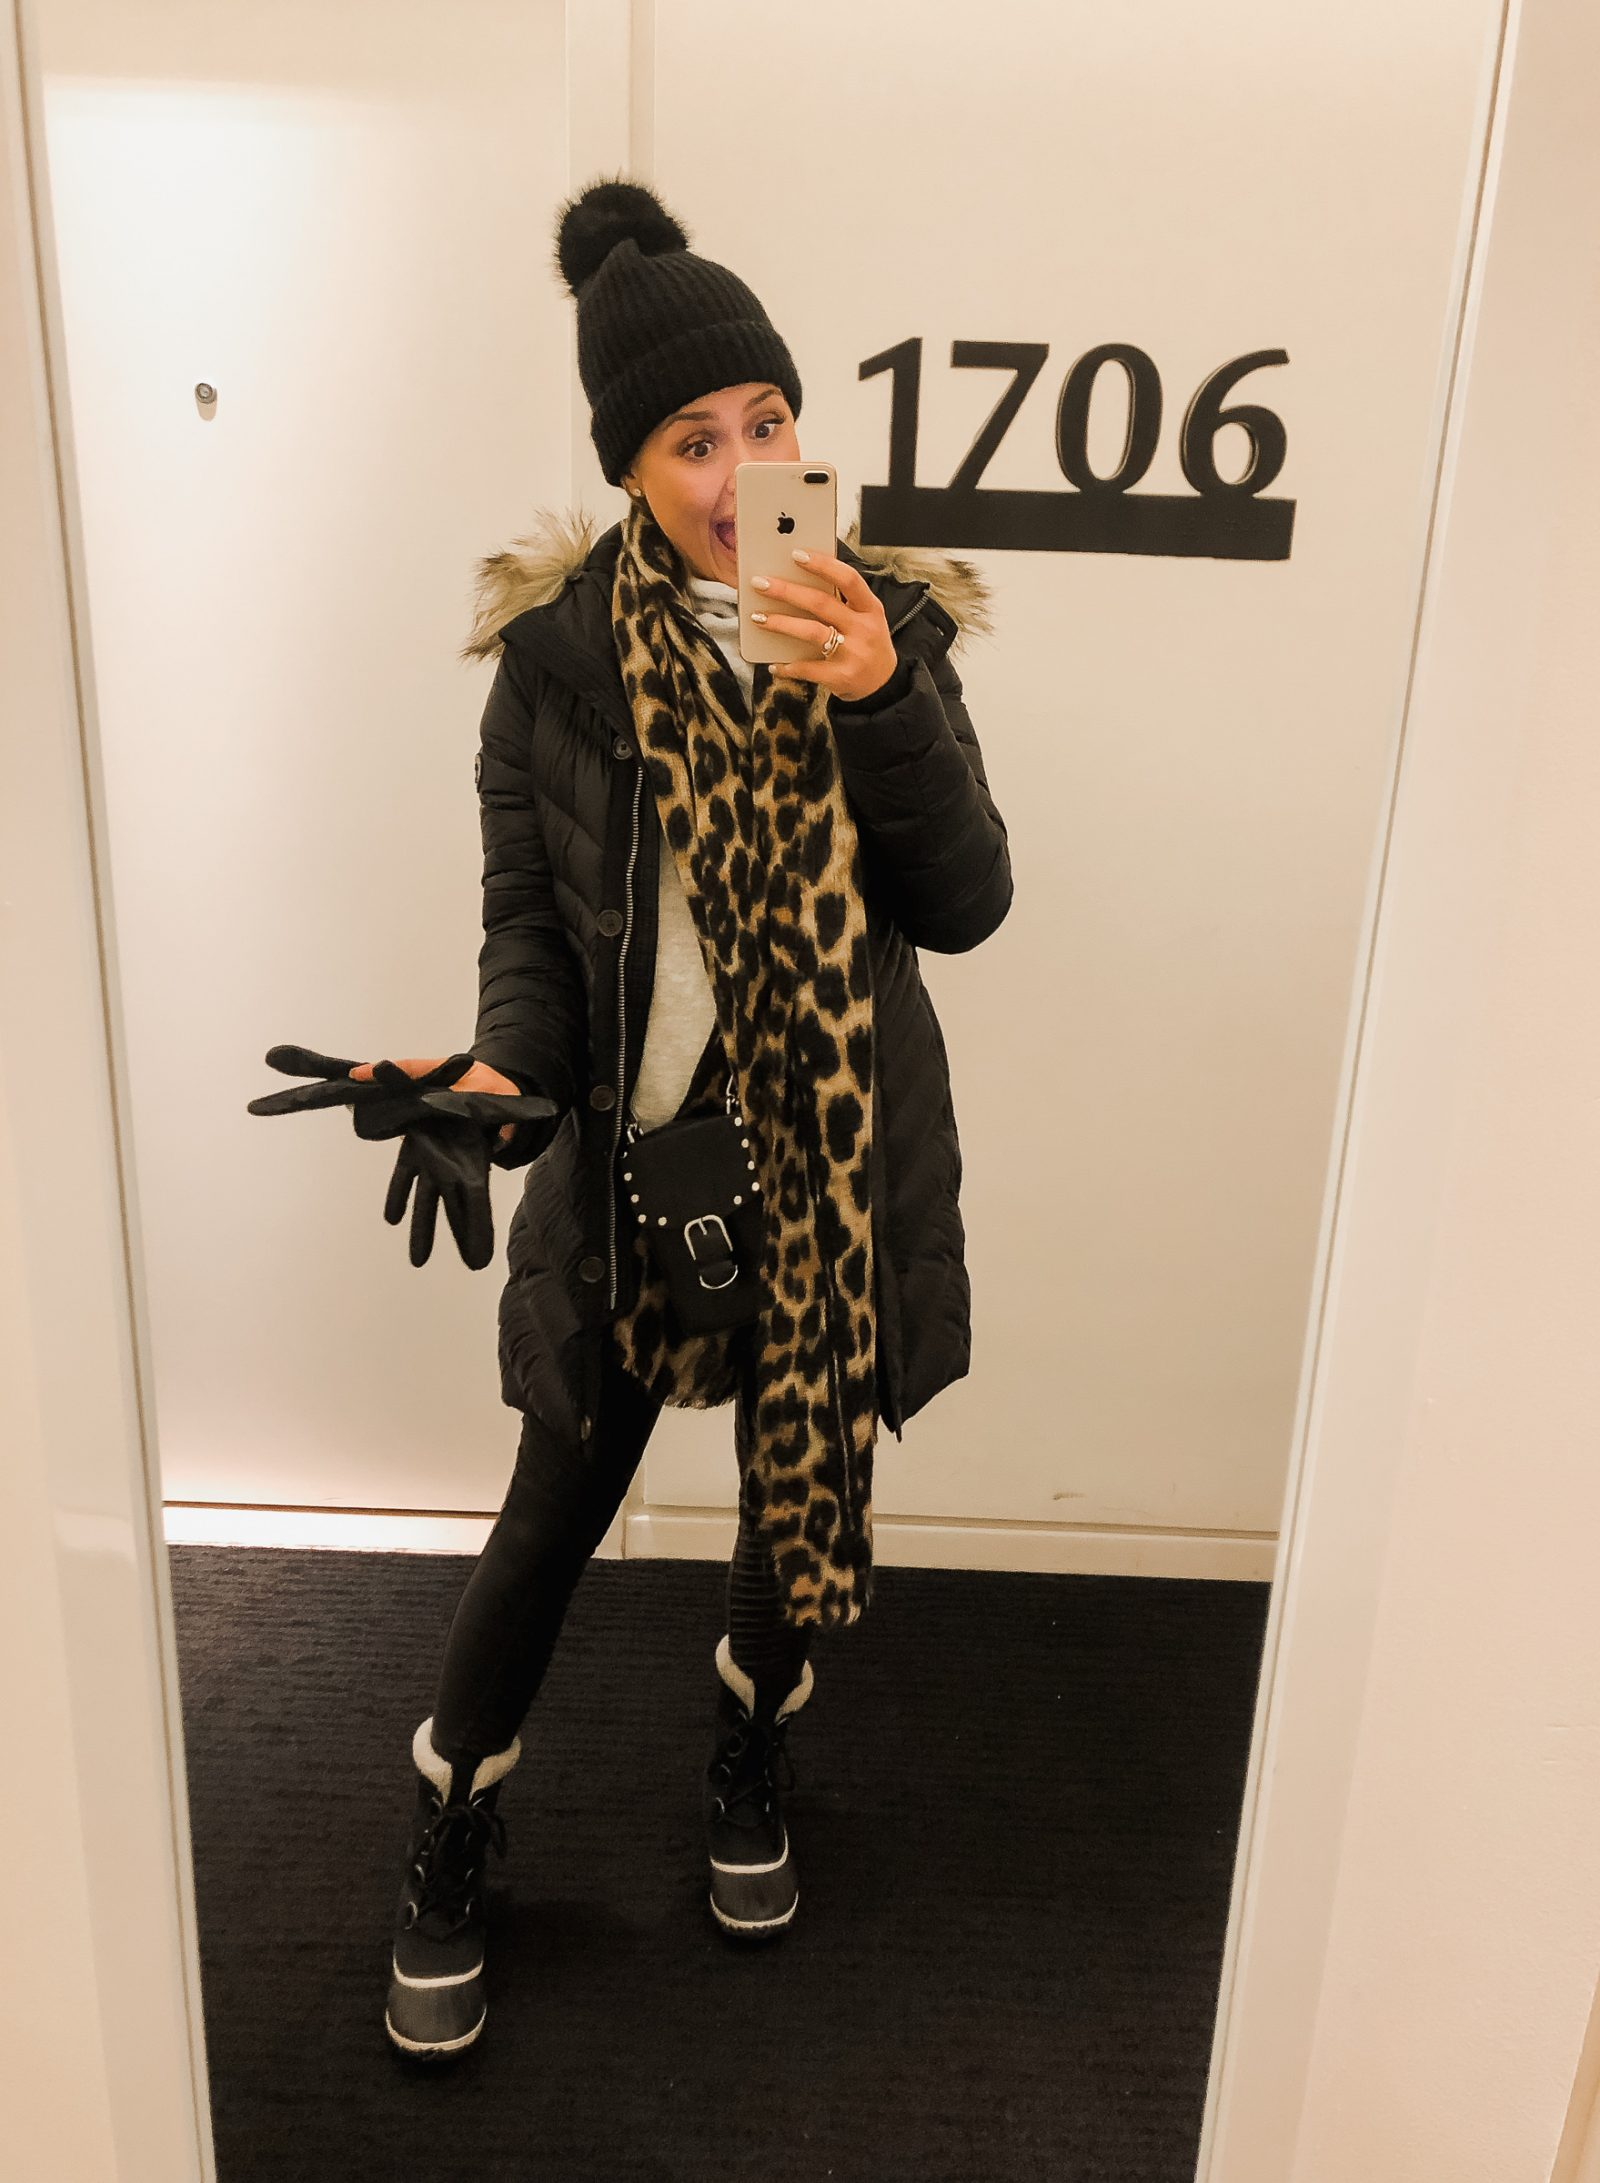 Houston Fashion blogger Uptown with Elly Brown shares what to wear to stay warm when in NYC winter